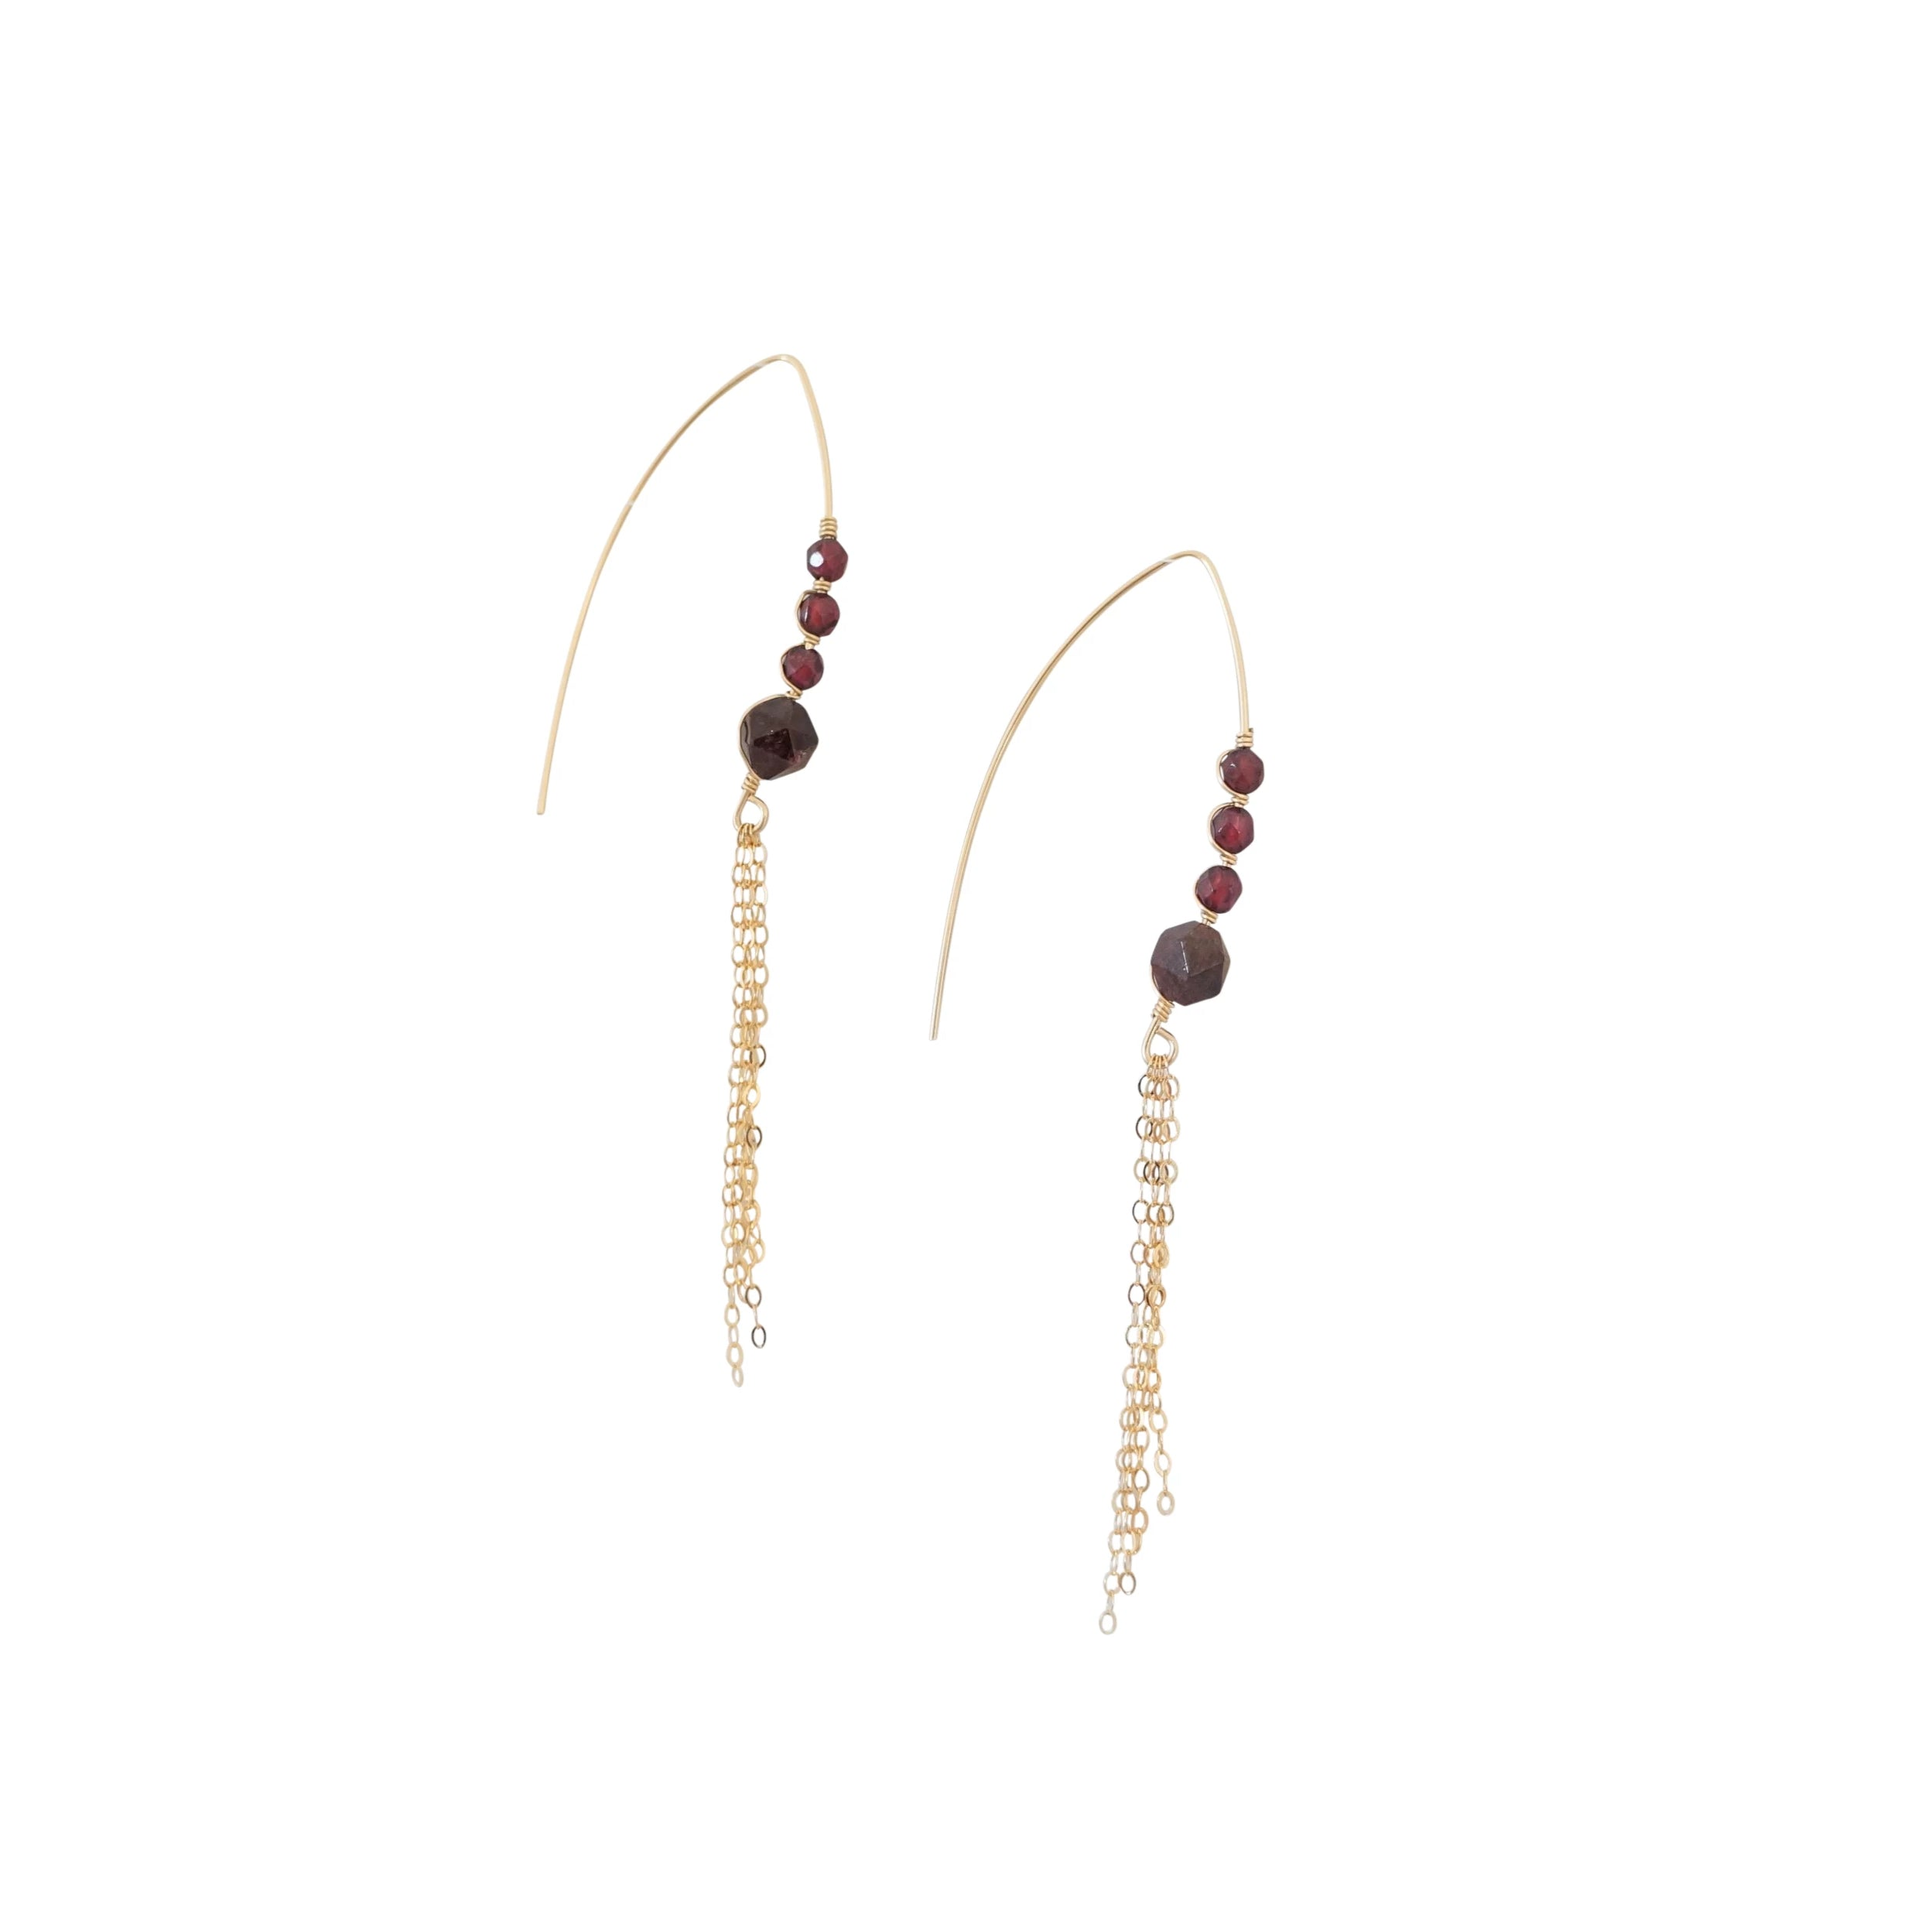 Affinity Earrings - Carolyn Hearn Designs